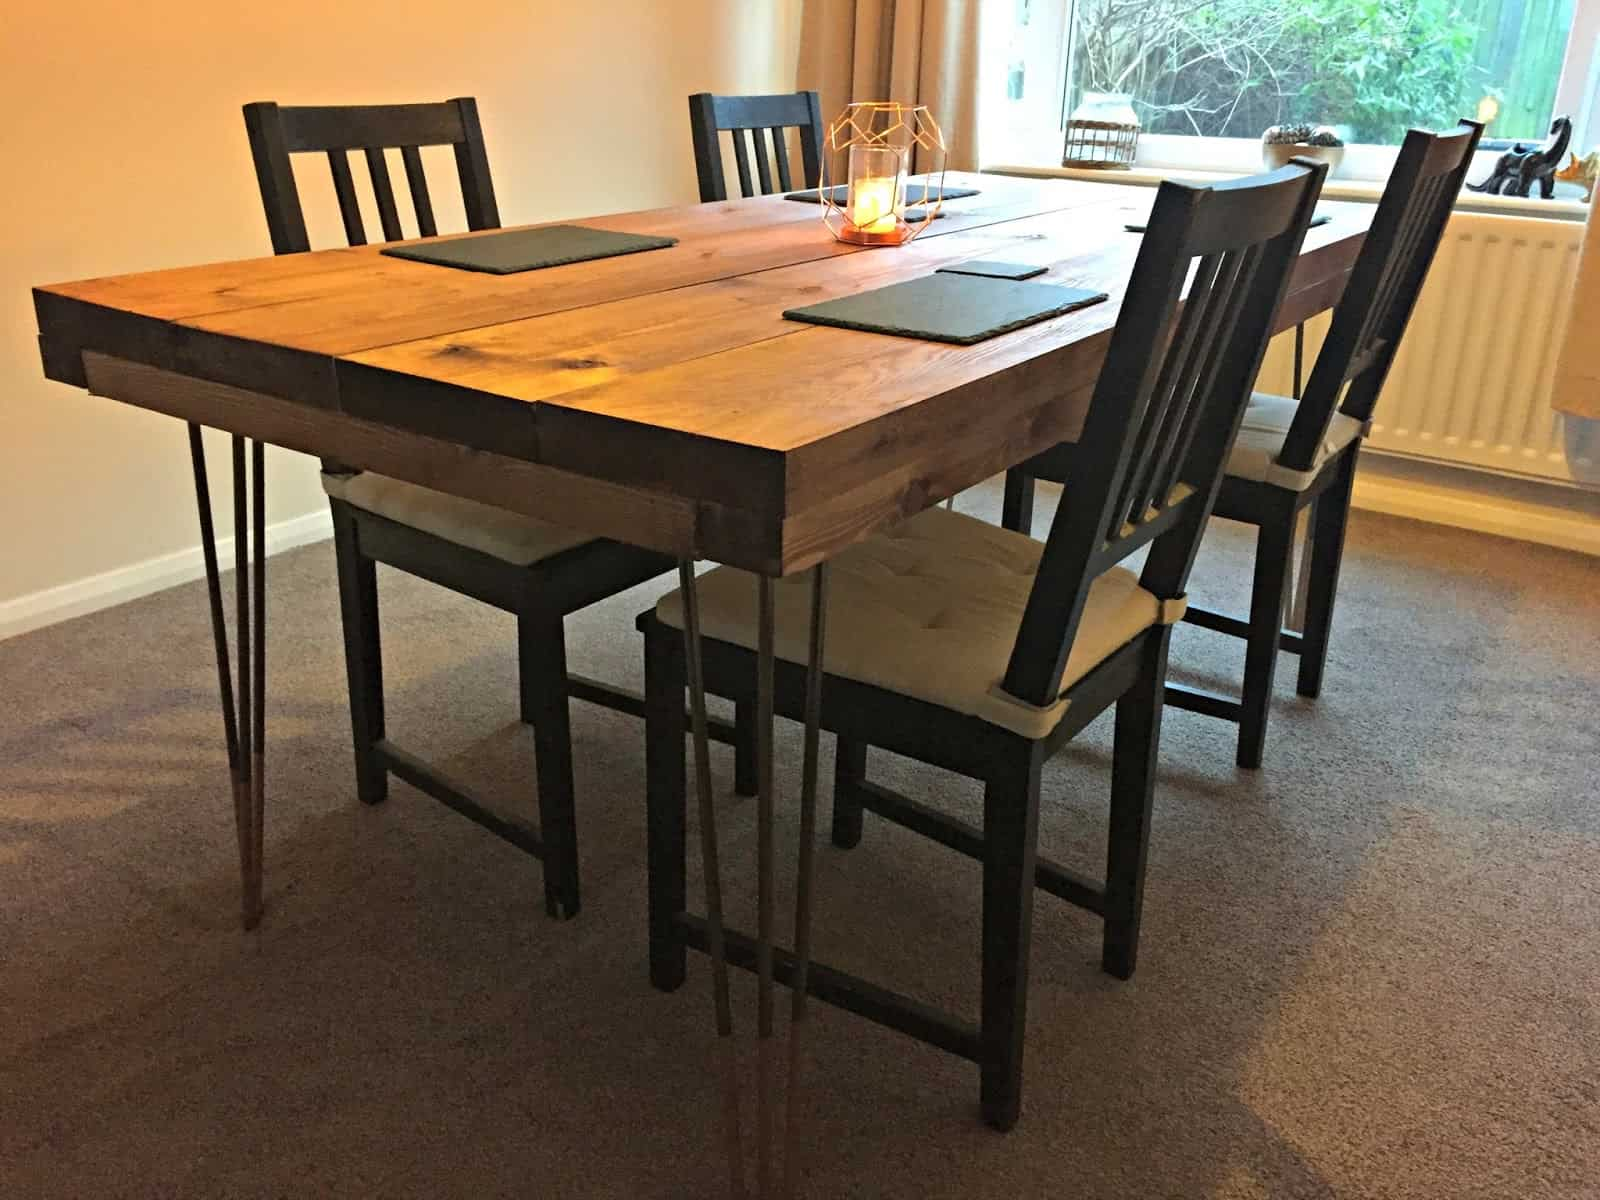 DIY Rustic Dining Table Tutorial